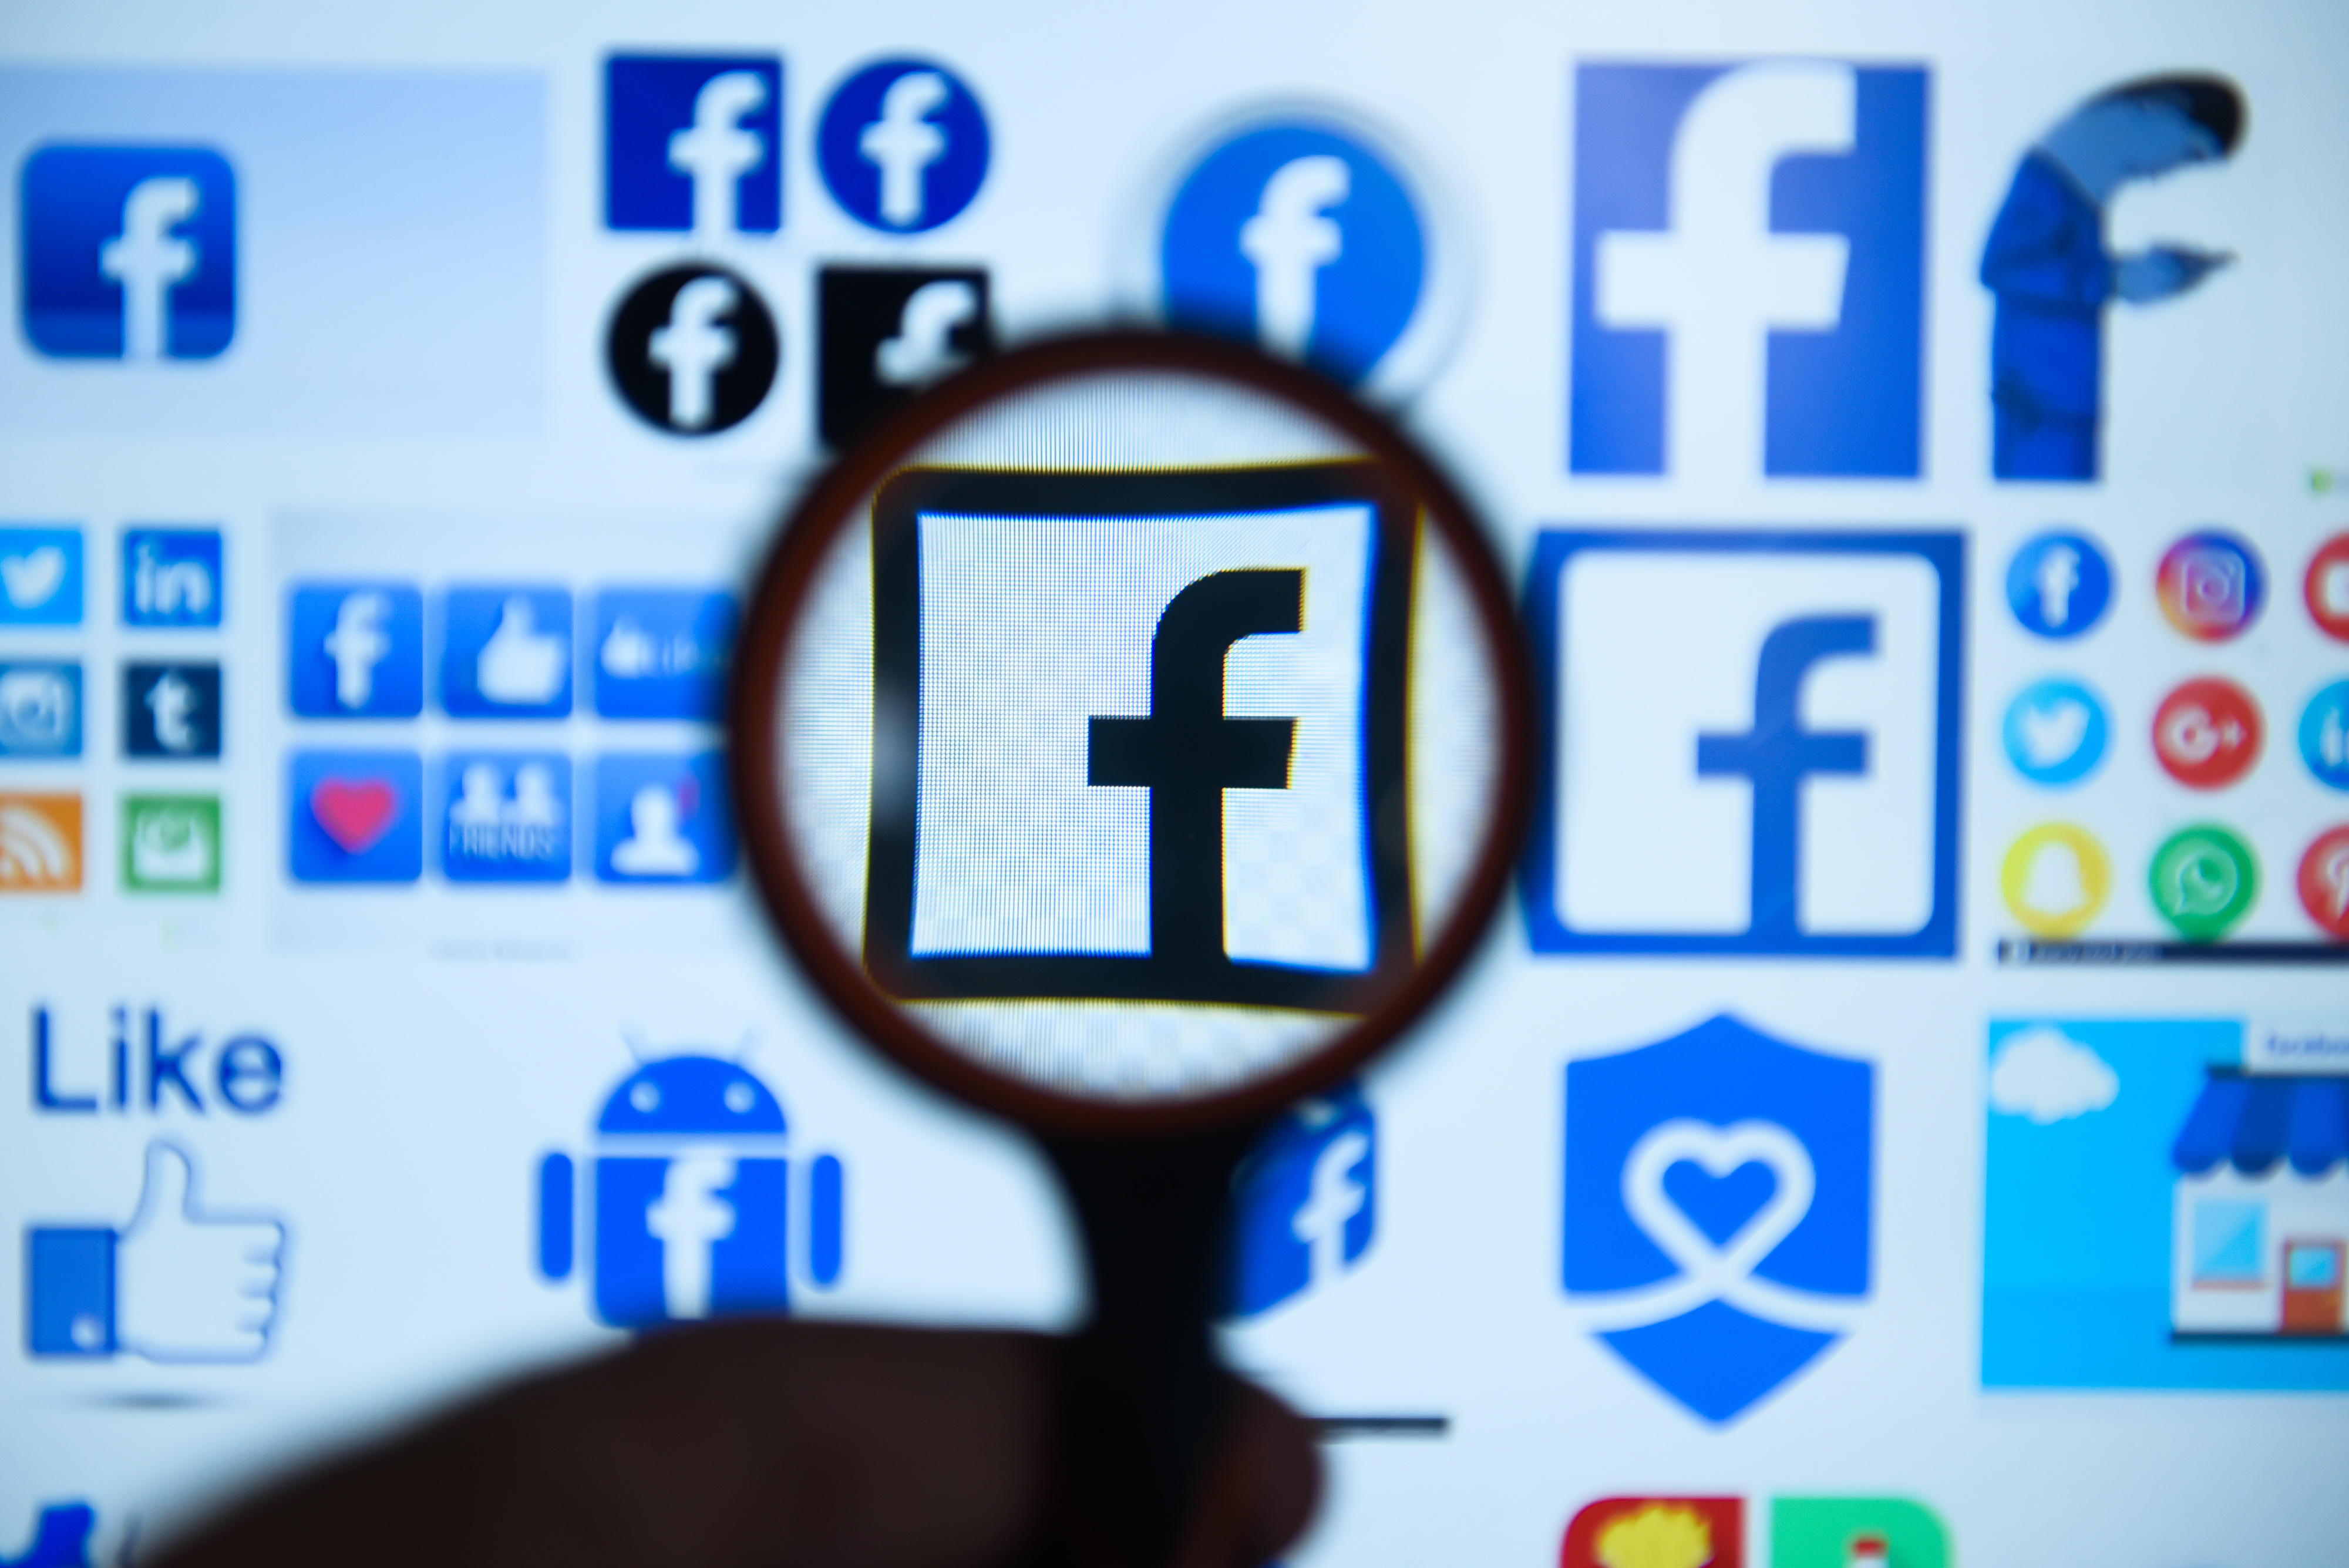 Facebook  logo is seen trough a magnifying glass on a